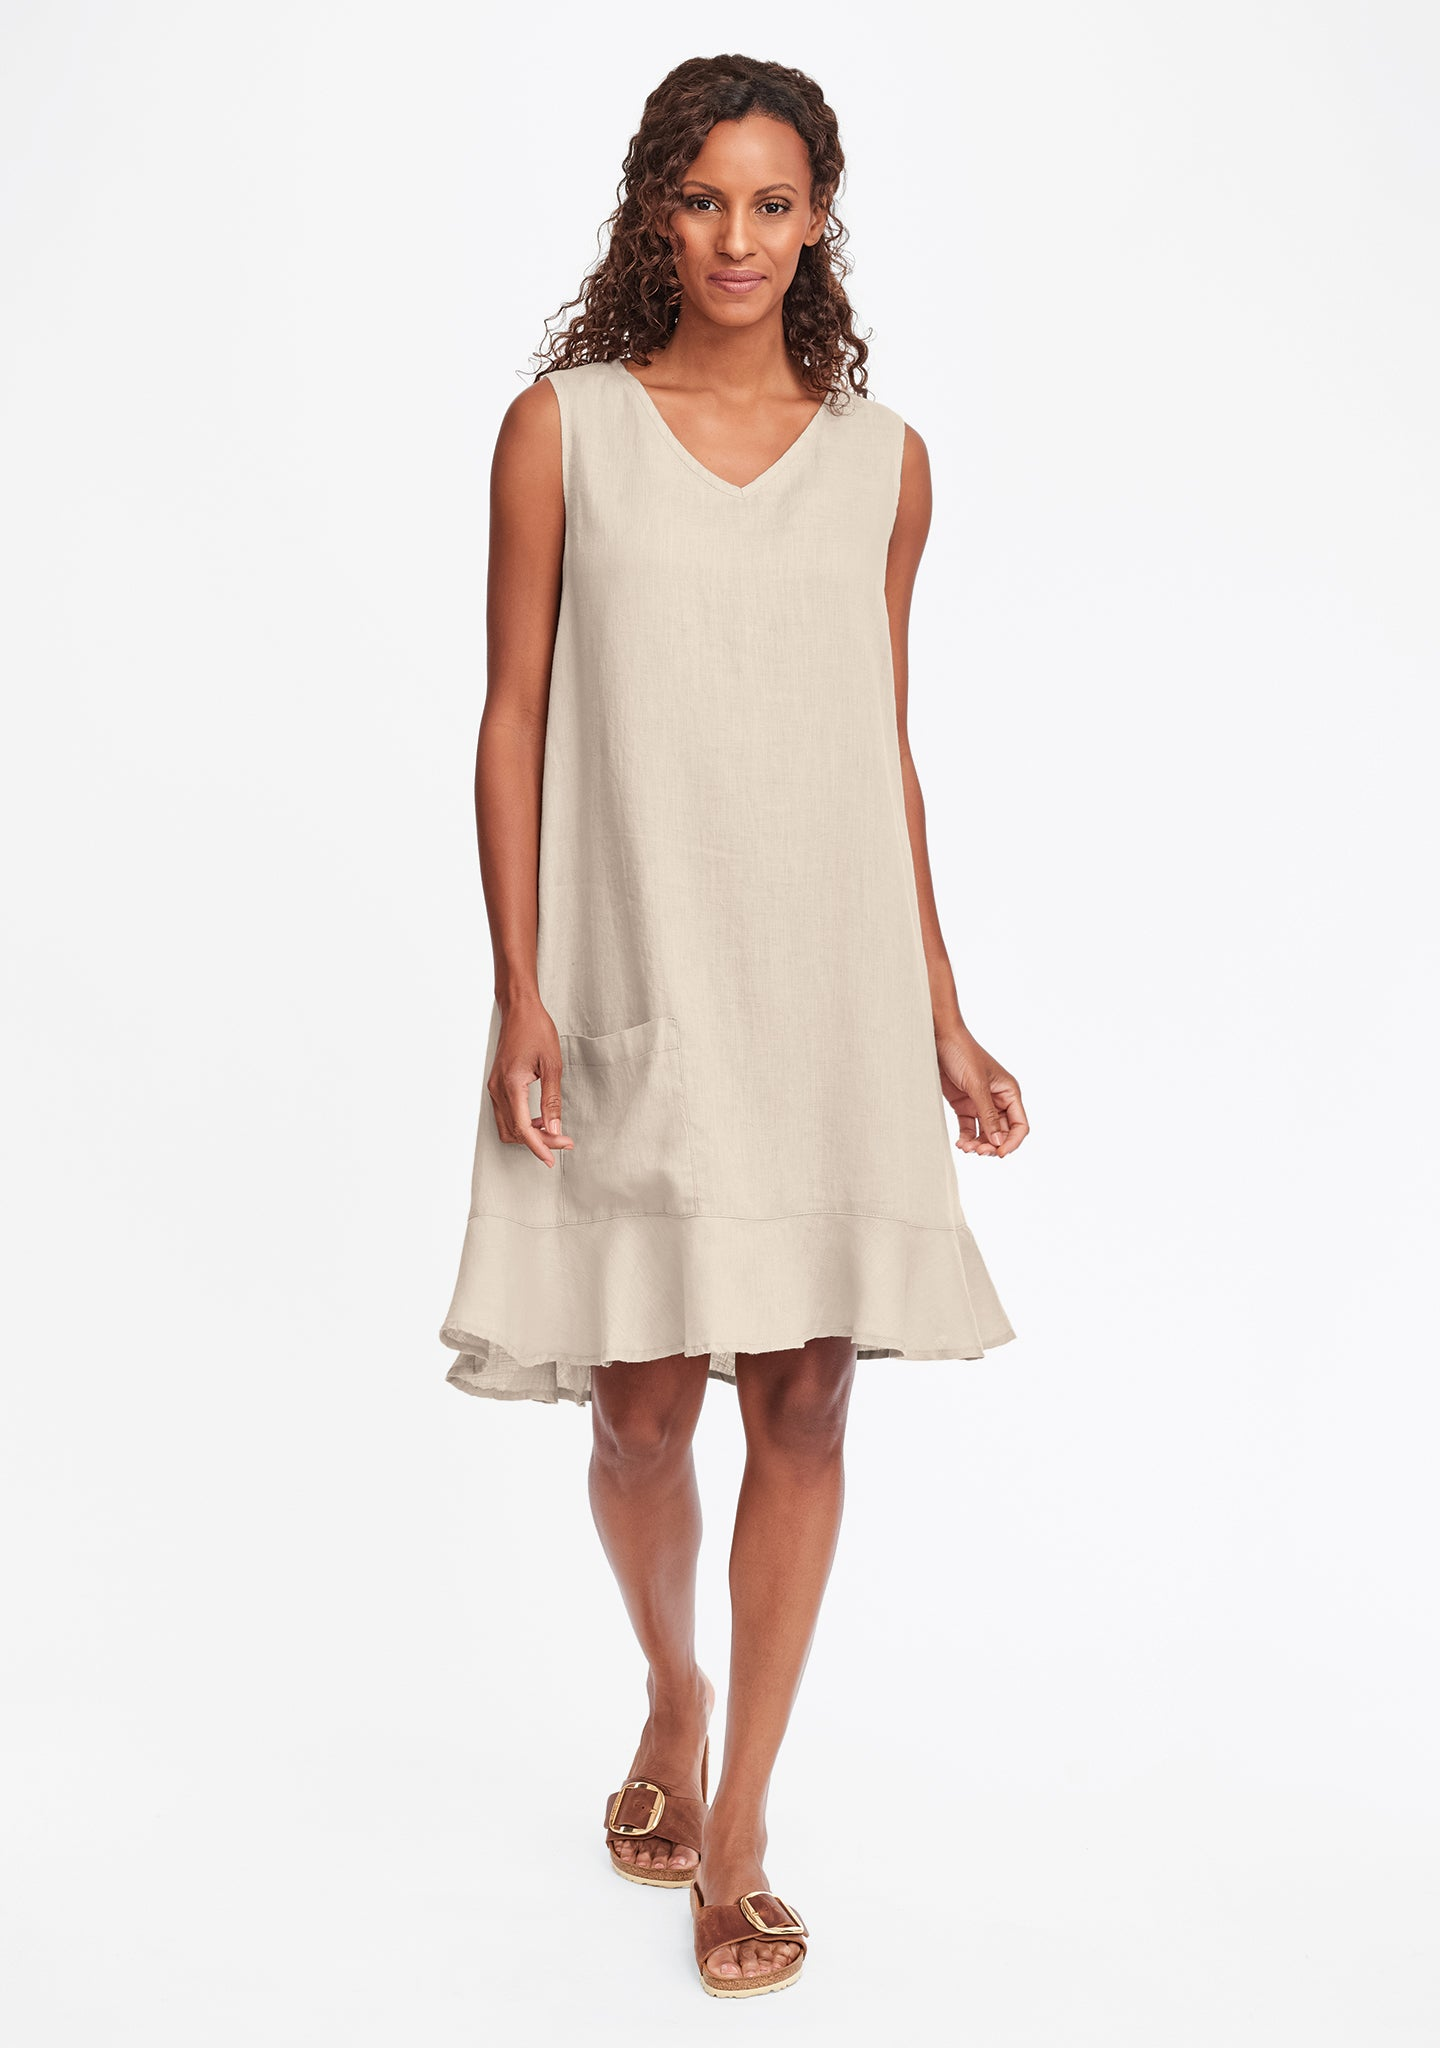 sweet dreams dress linen shift dress natural